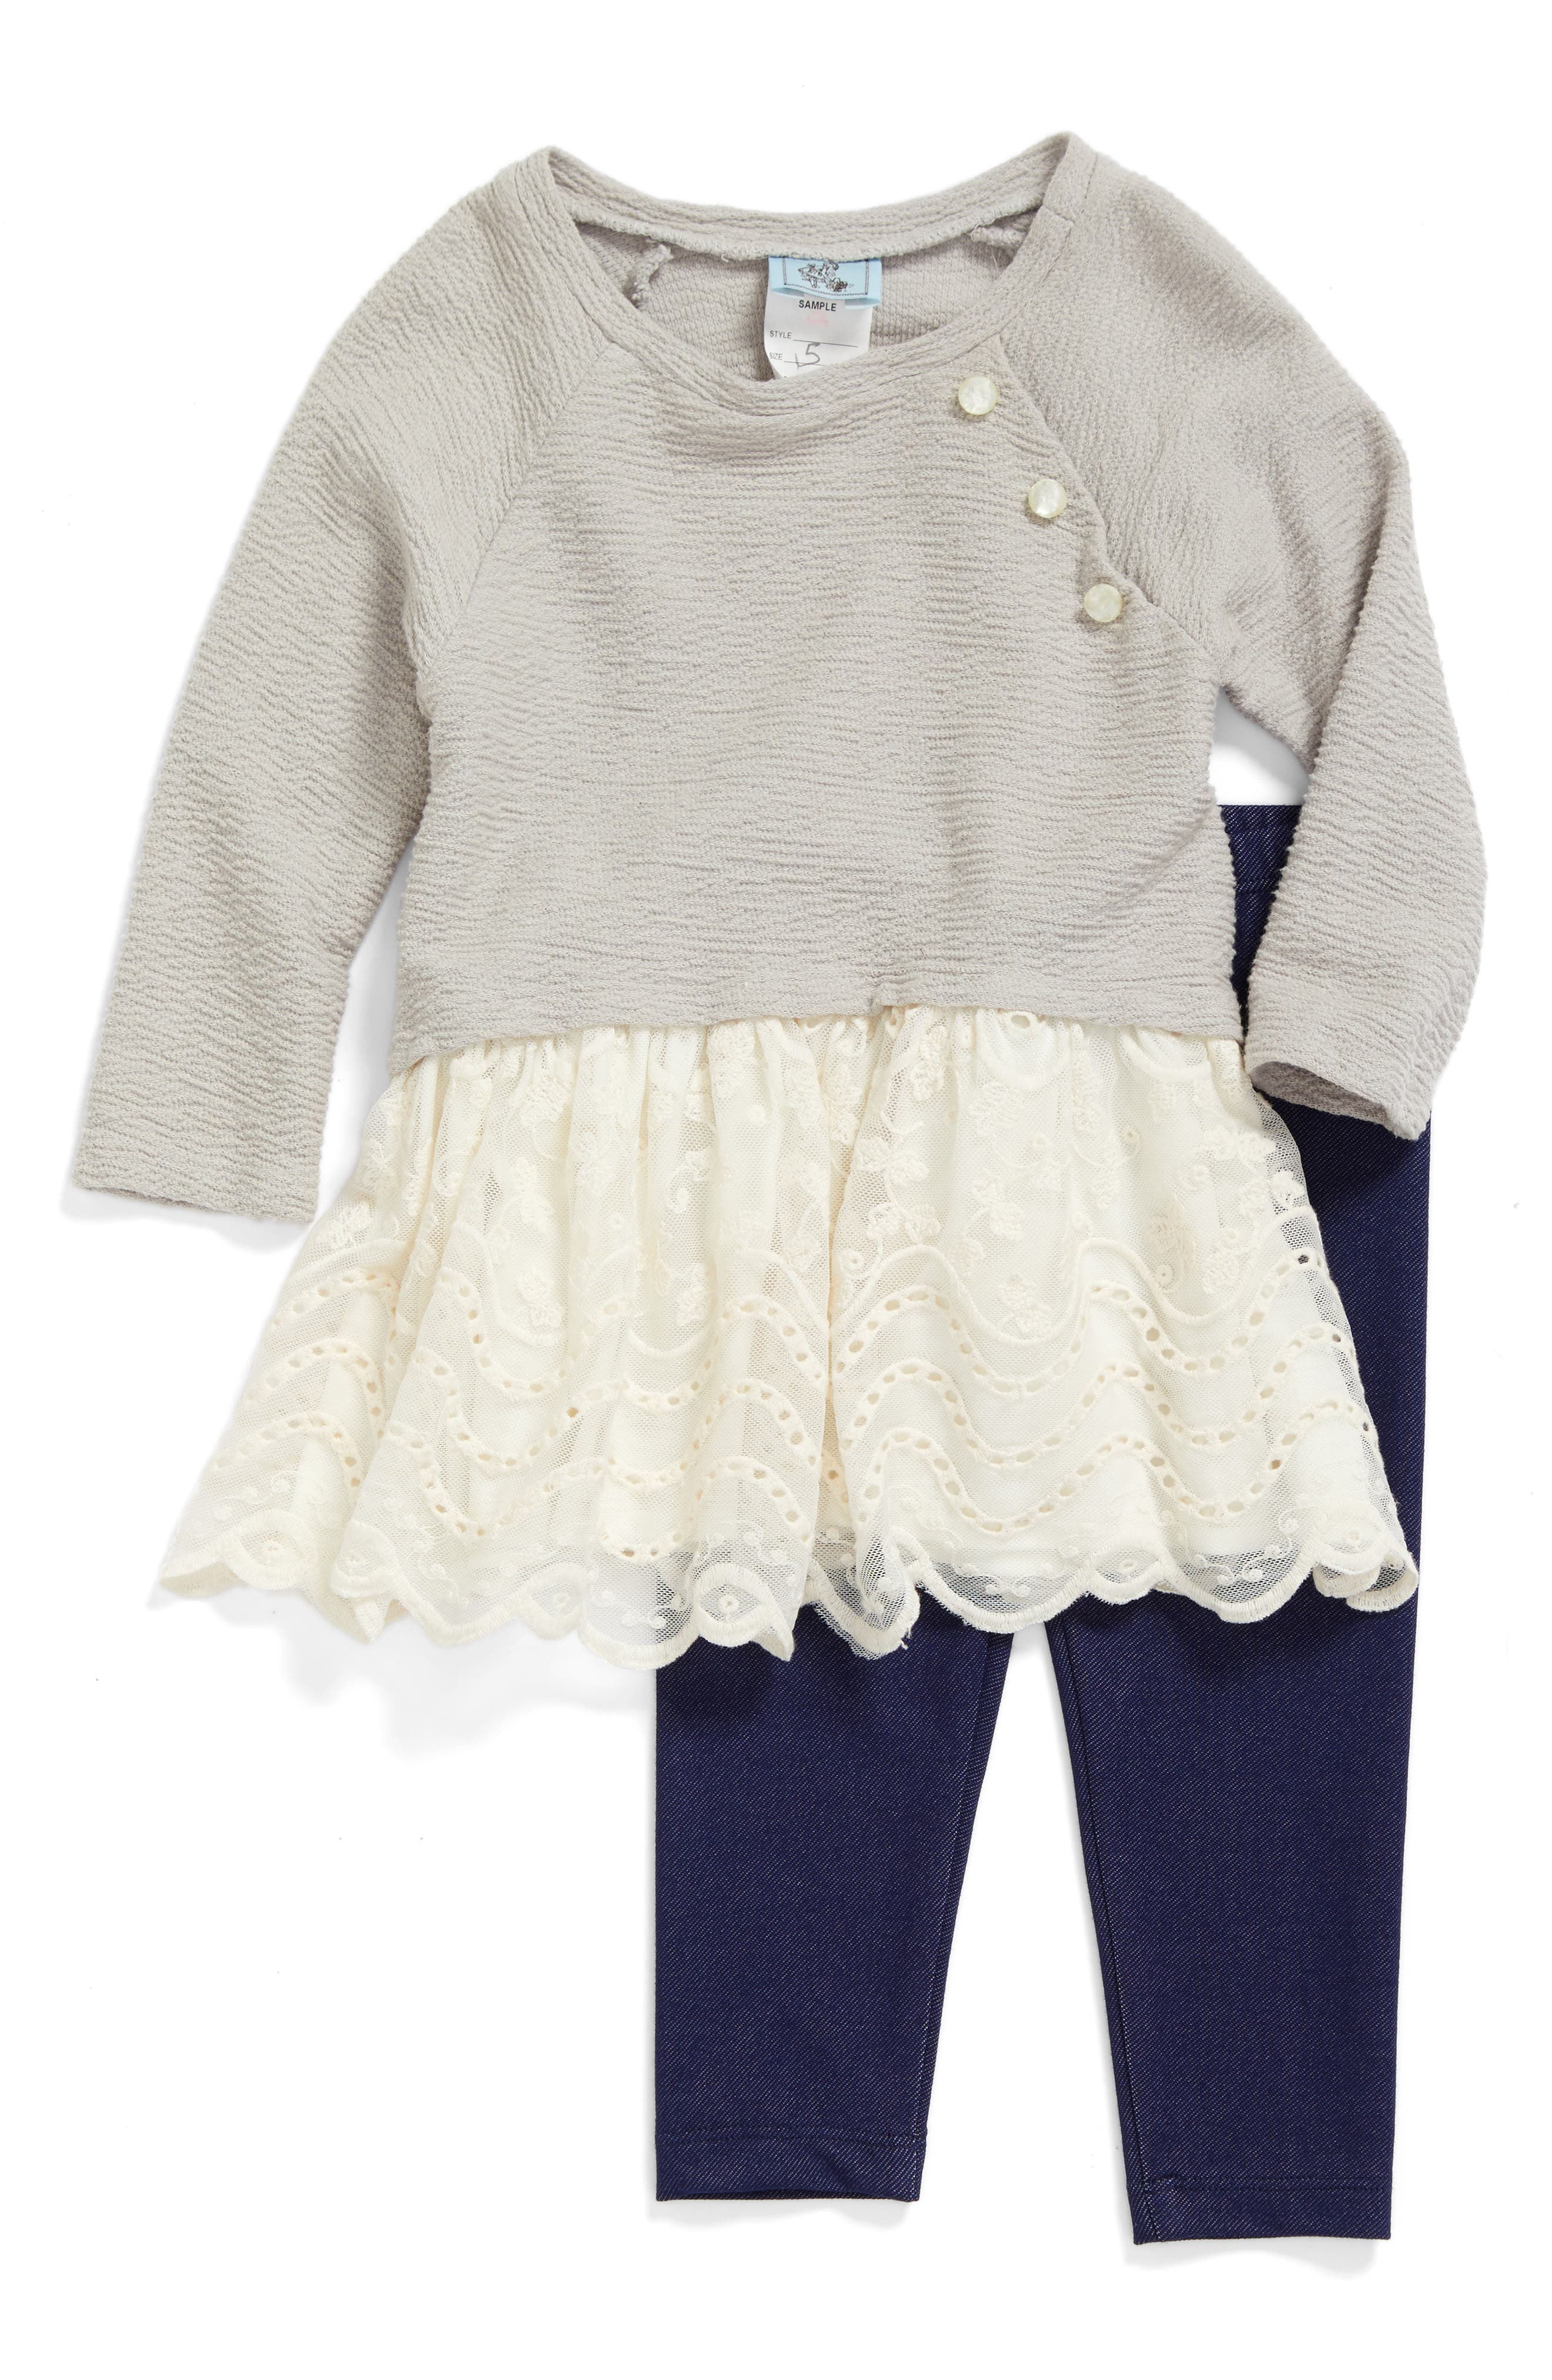 Pippa & Julie Lace Peplum Top & Jeggings Set (Toddler Girls & Little Girls)